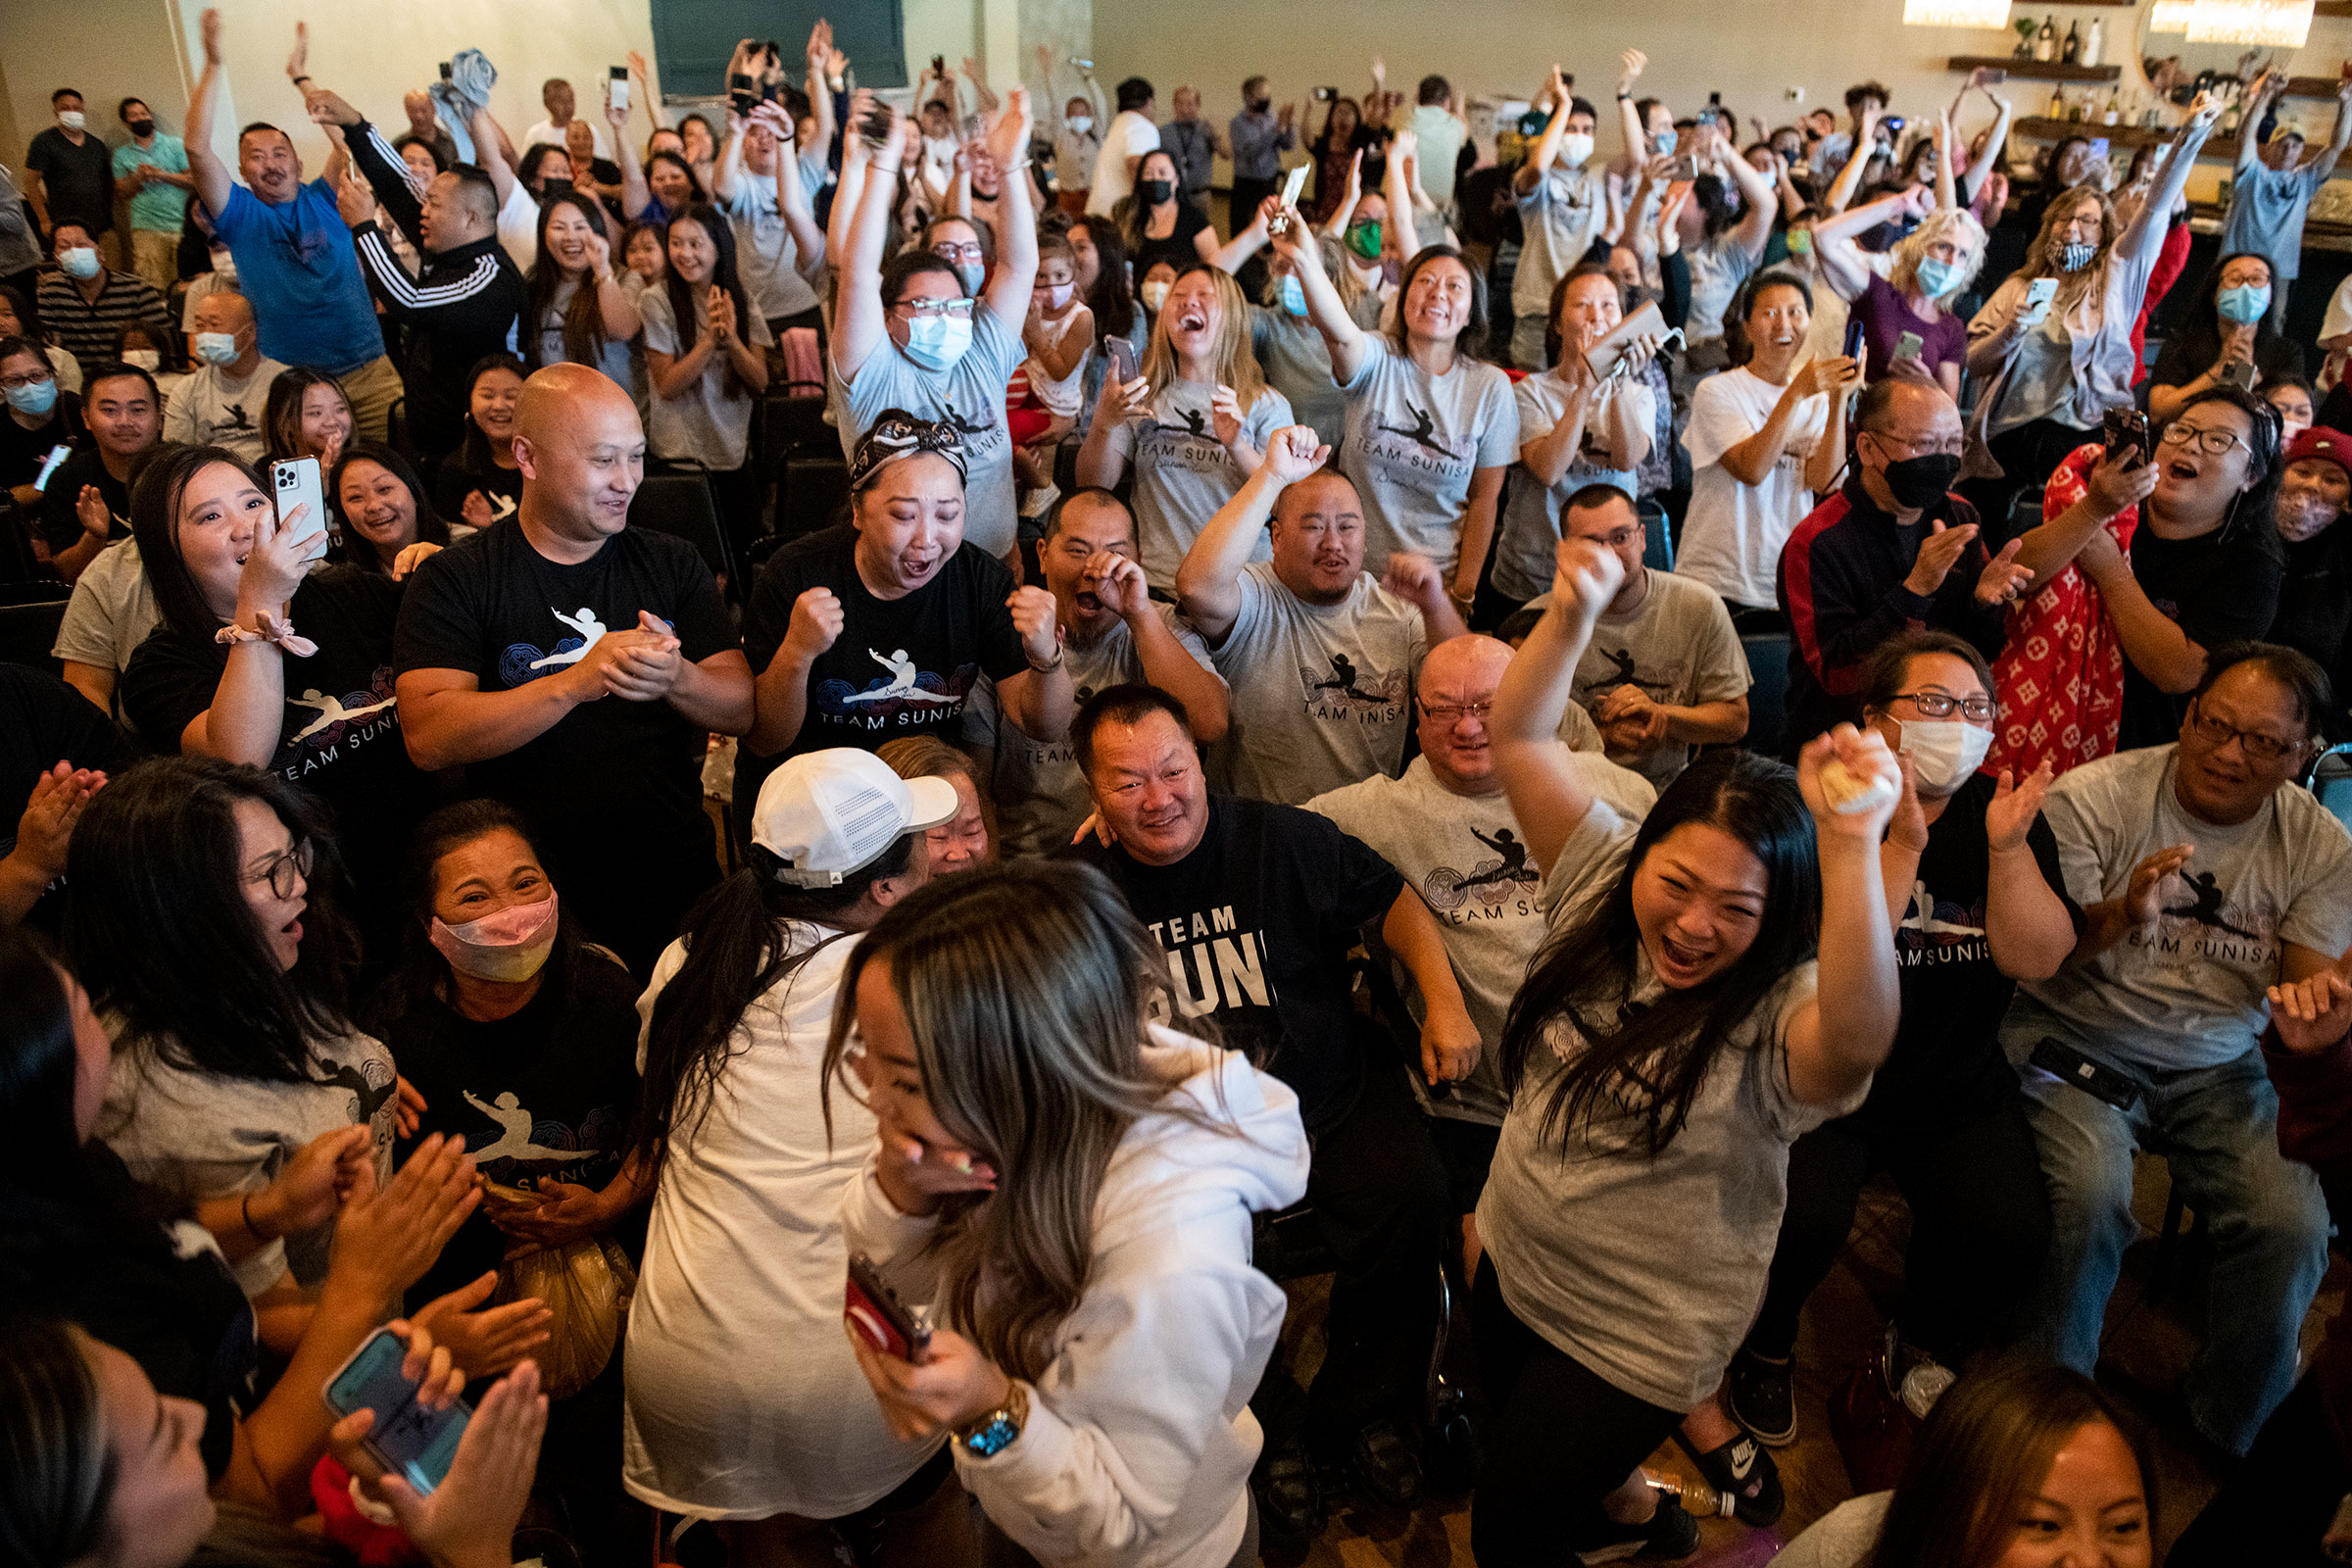 John Lee (C), father of Sunisa Lee of Team United States, celebrates after she won gold in the Women's All-Around Gymnastics Final on day six of the Tokyo 2020 Olympic Games at a watch party on July 29, 2021 in Oakdale, Minnesota.